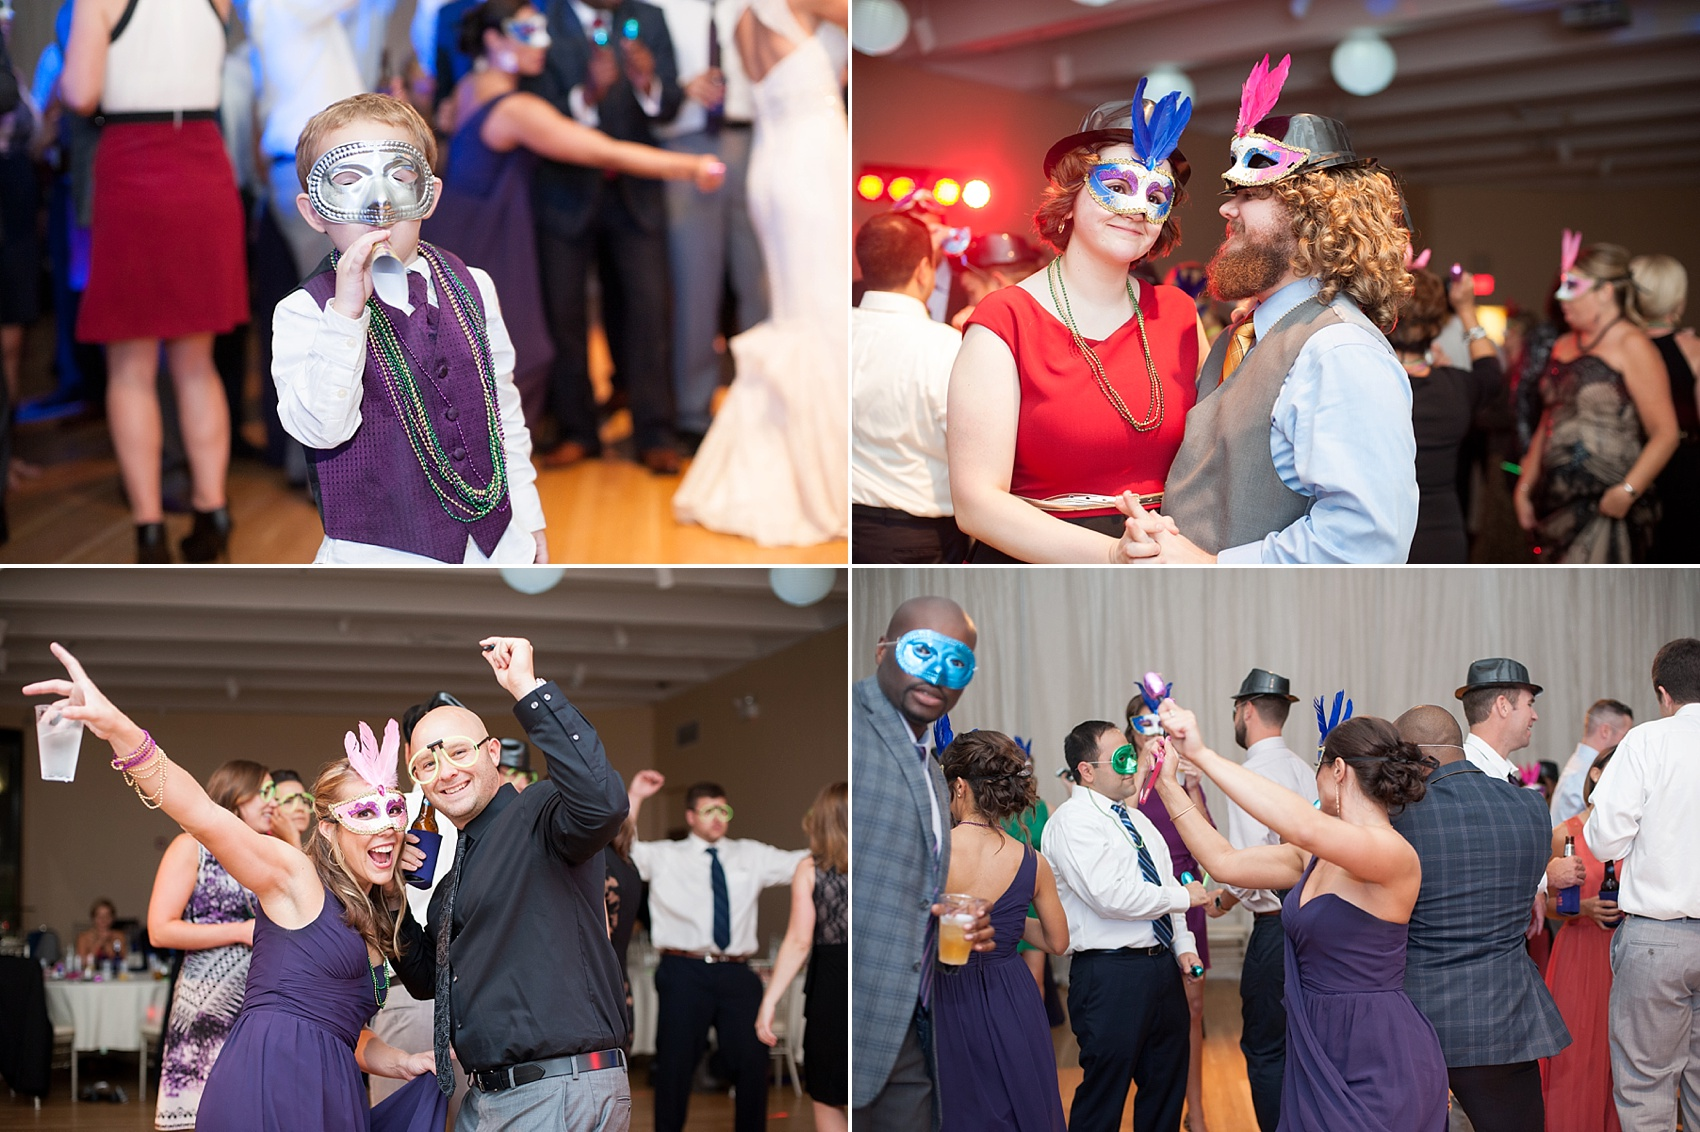 Columbian mask tradition for a wedding at The Center, downtown Cincinnati, Ohio. Photos by Mikkel Paige Photography.